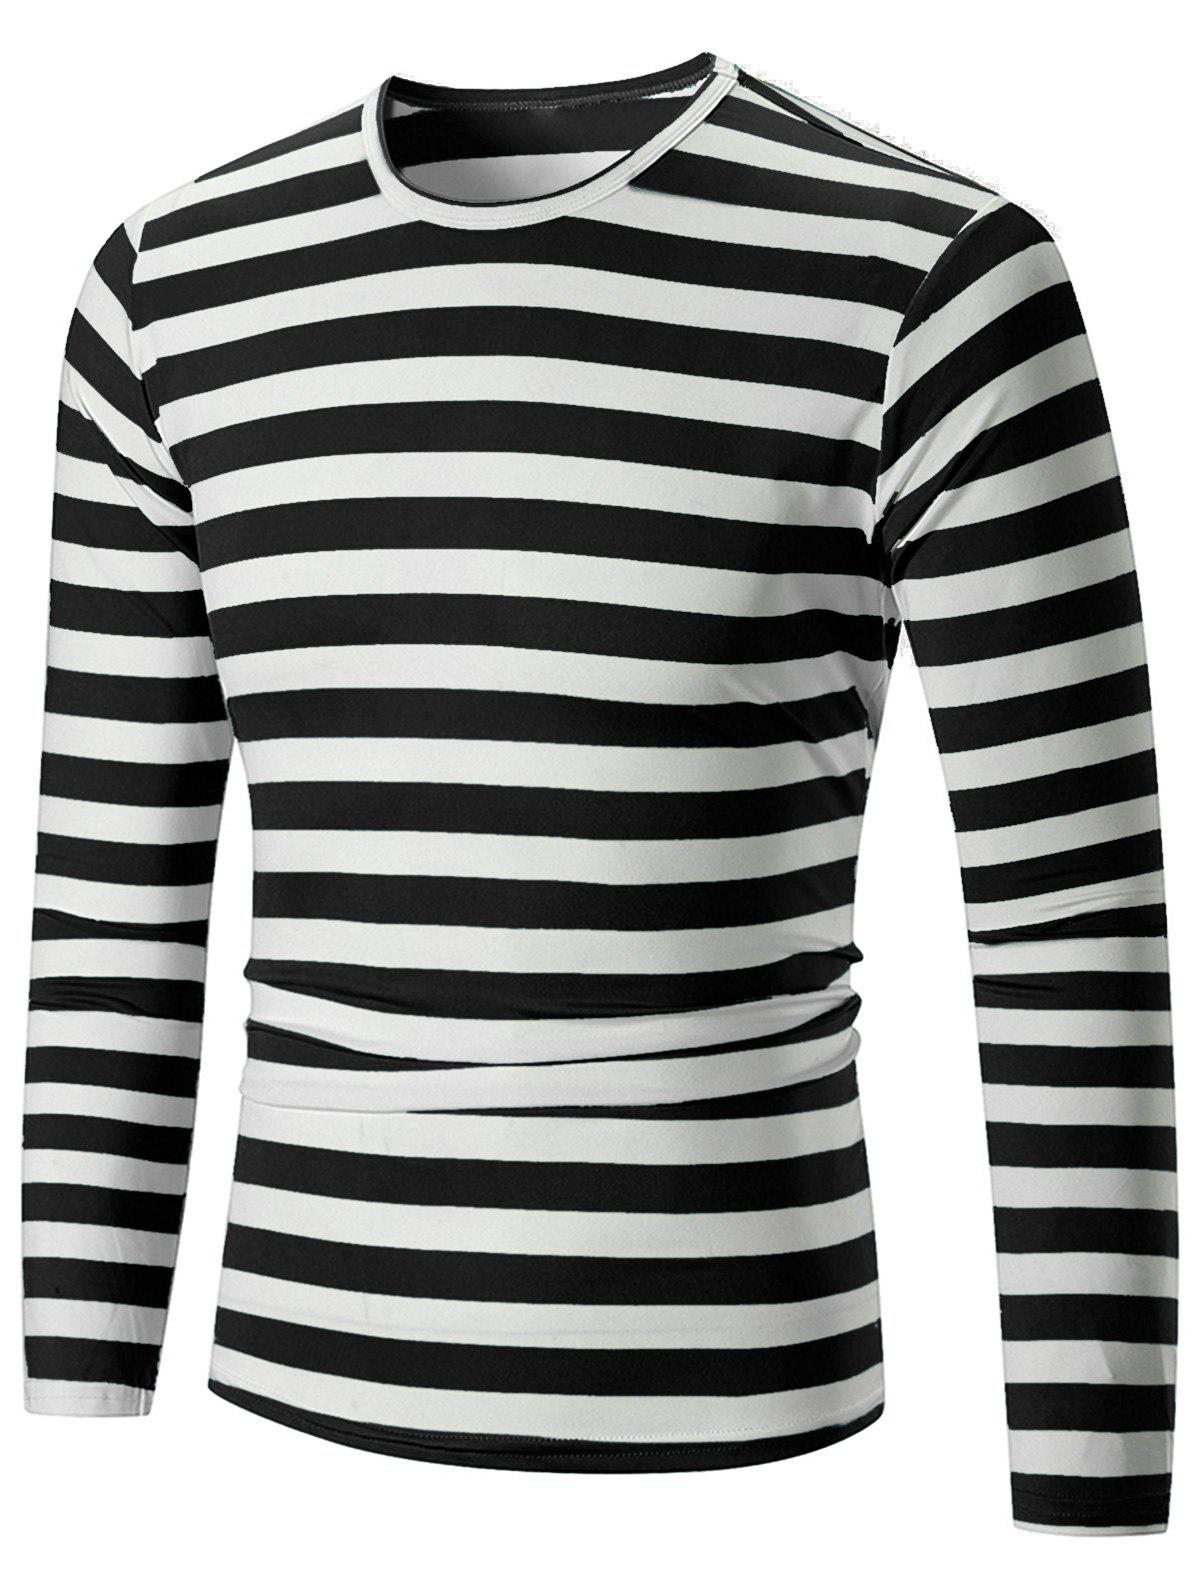 Crew Neck Striped Print T-shirt - BLACK L